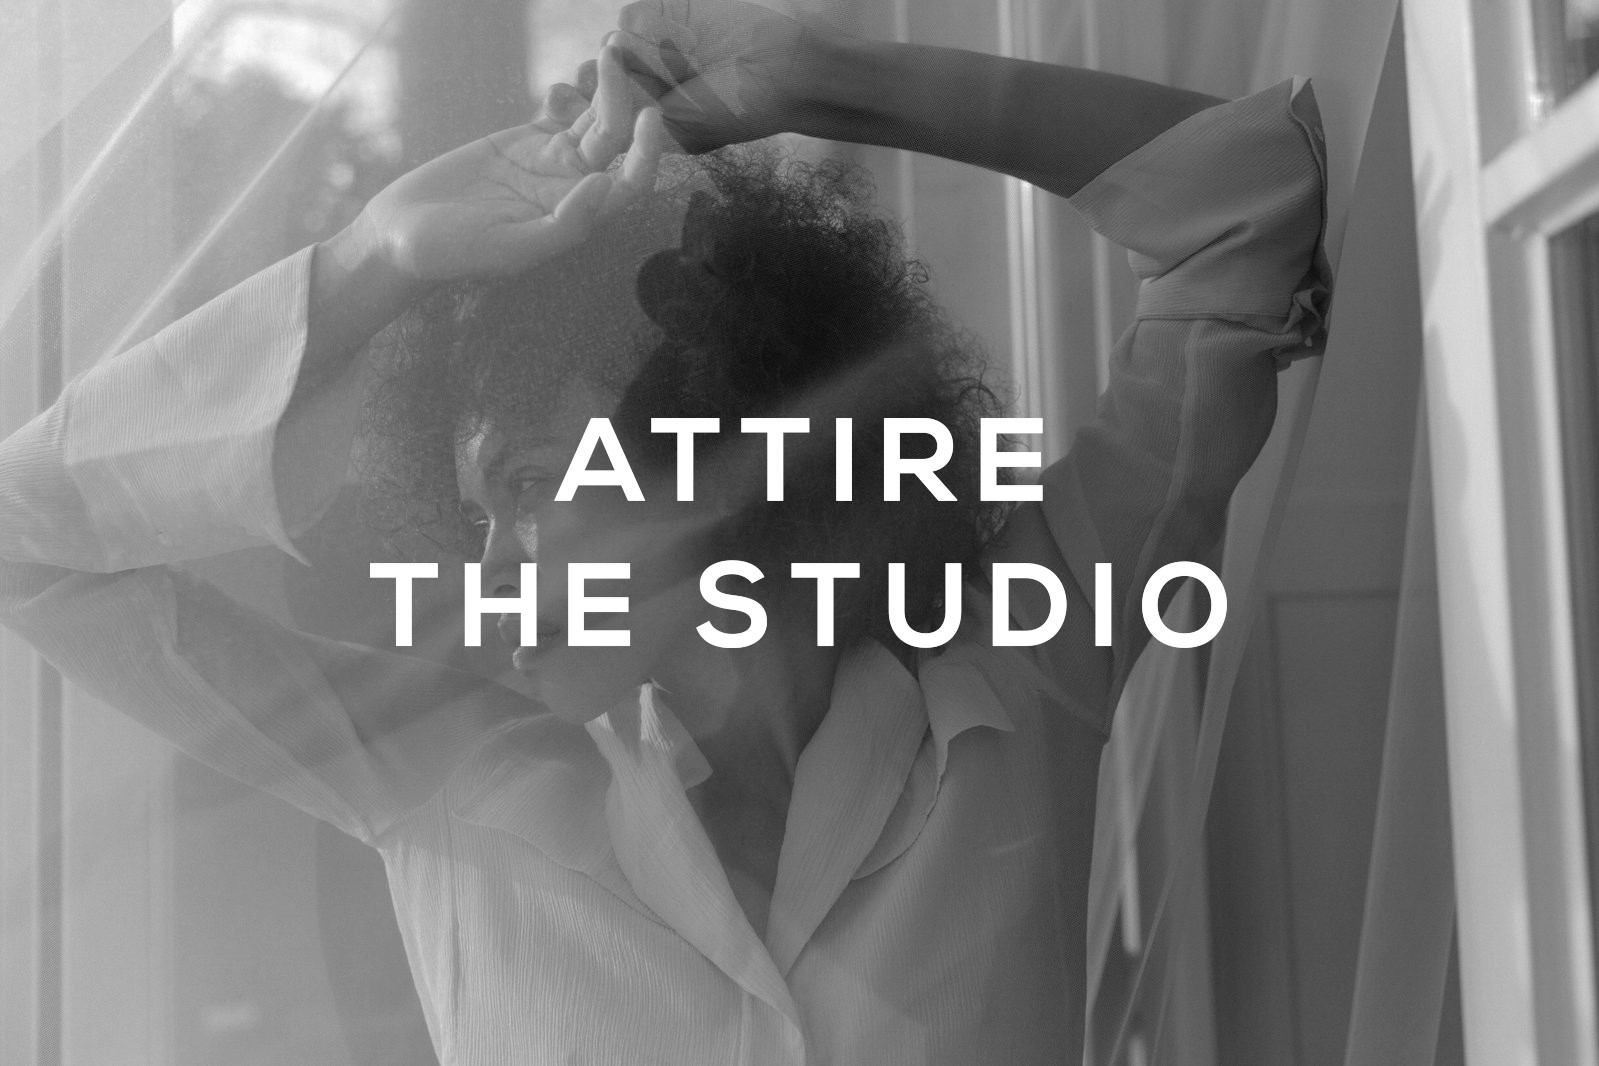 ATTIRE THE STUDIO